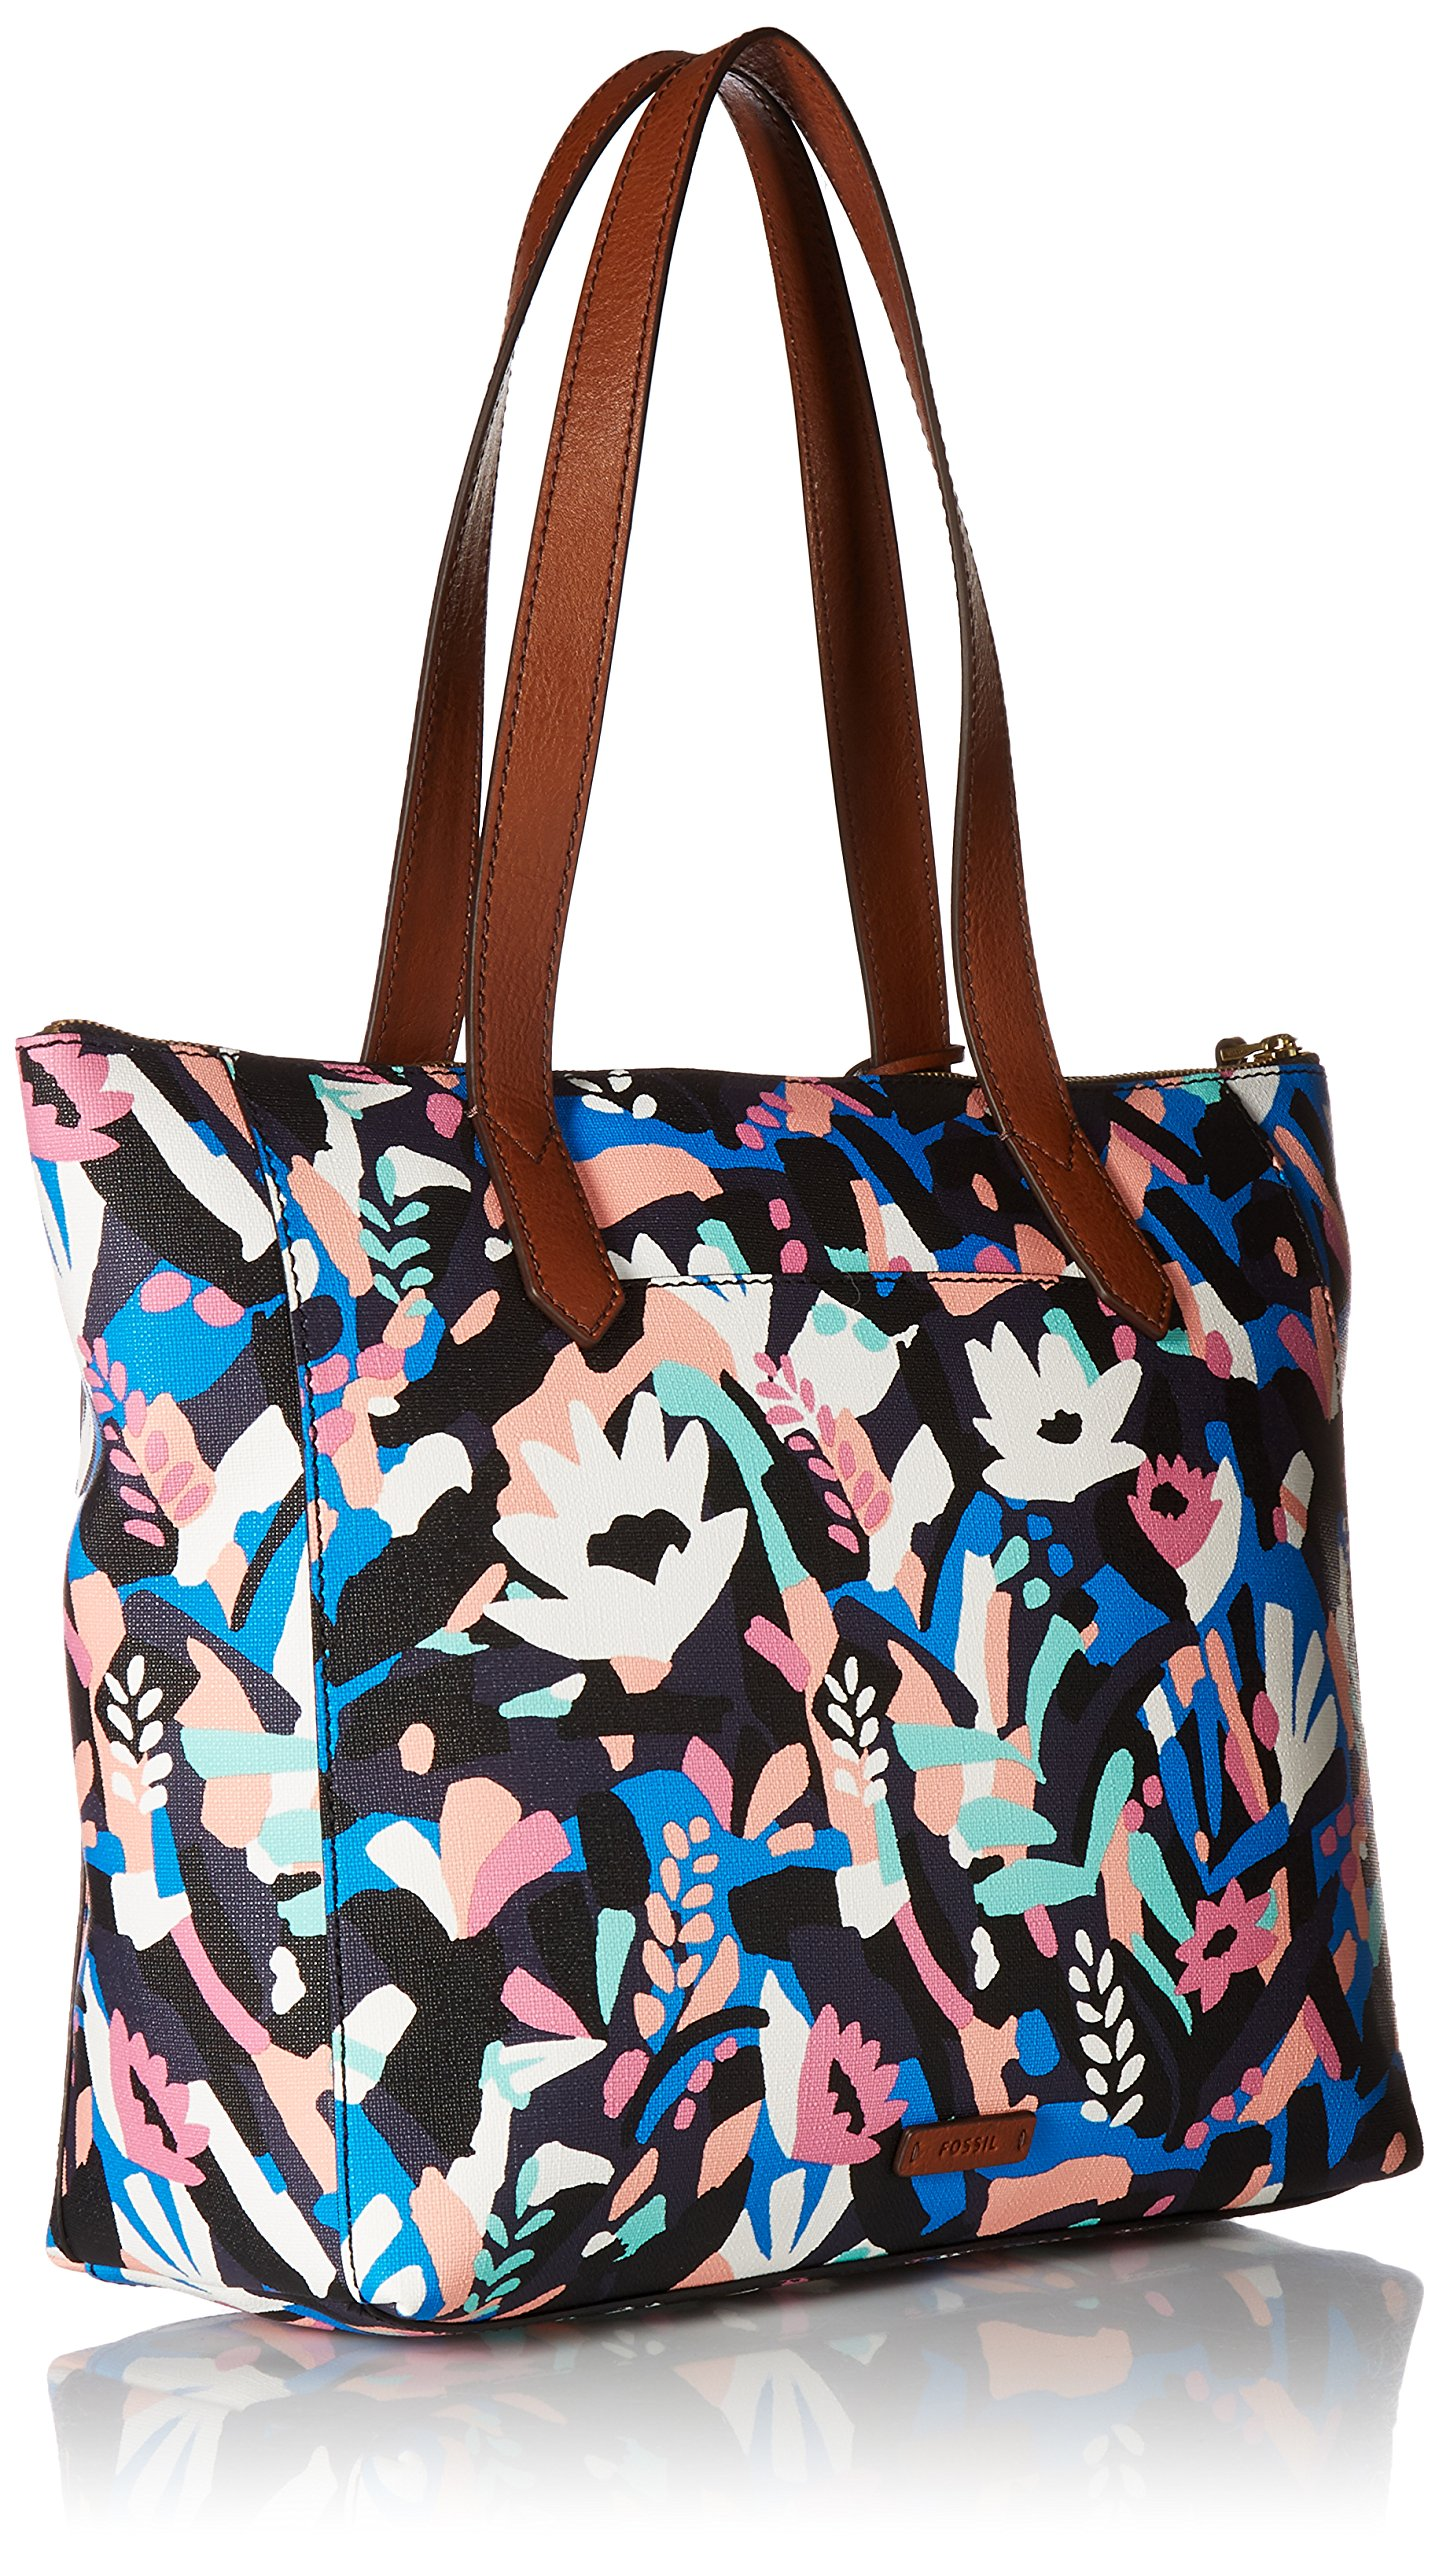 Fossil Fiona E/W Tote Bag, Black Floral,One Size by Fossil (Image #2)